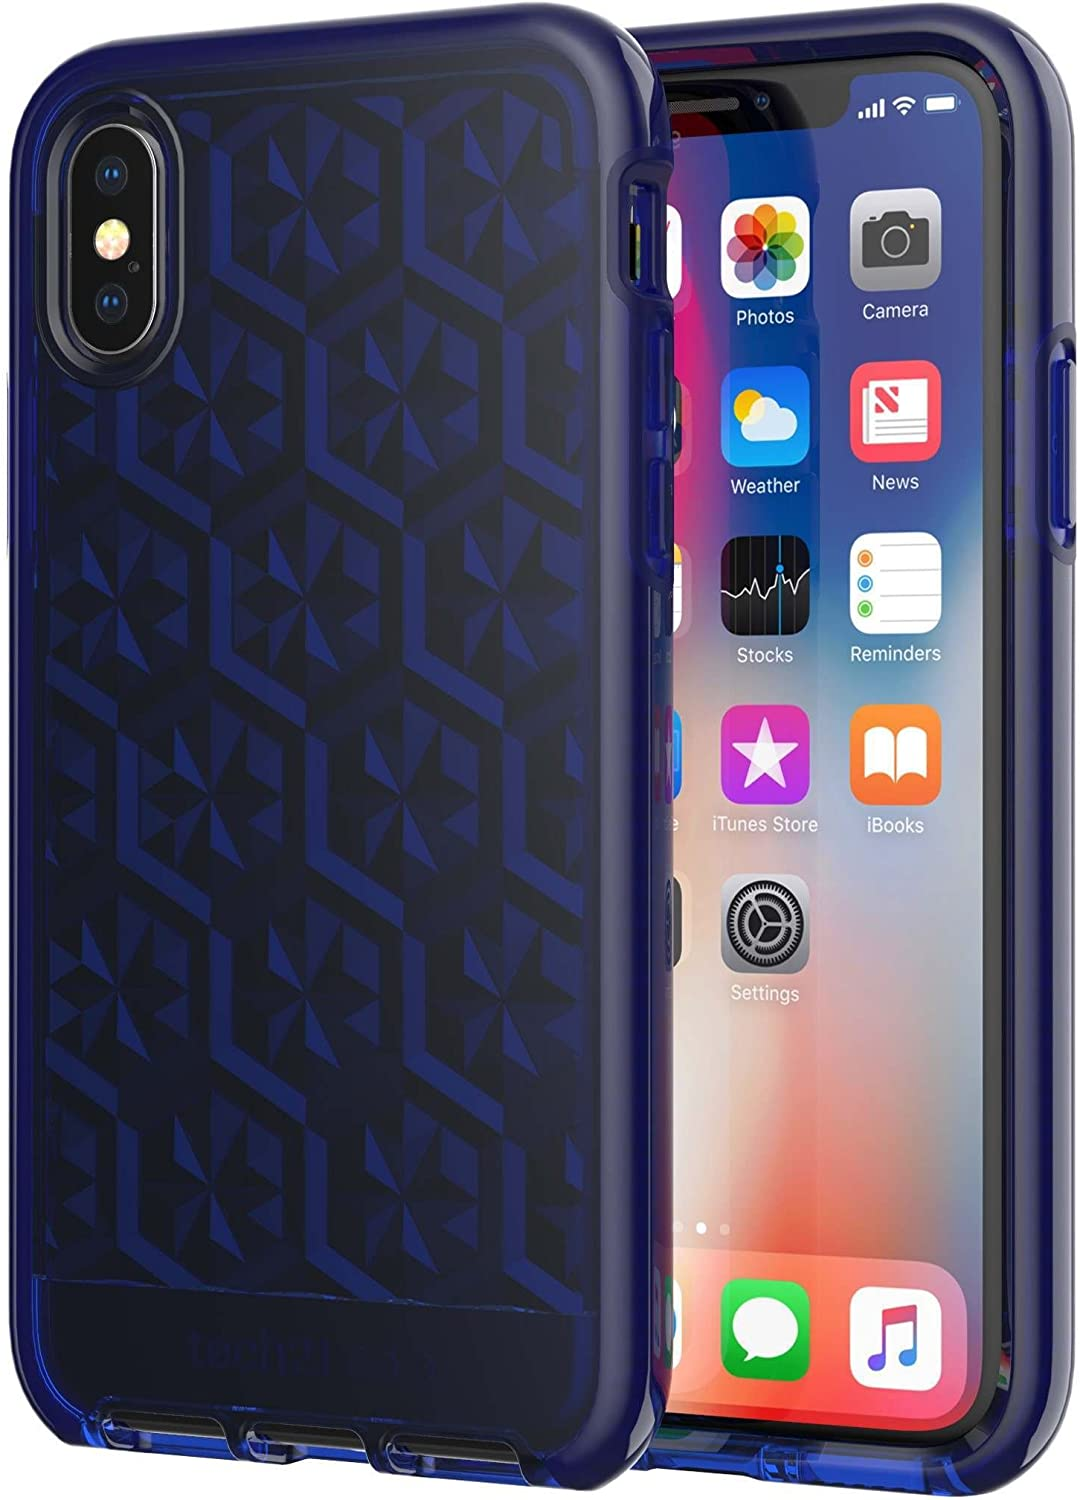 tech21 Evo Gem Phone Case for Apple iPhone X and Xs - Dark Blue, Model: T21-5904